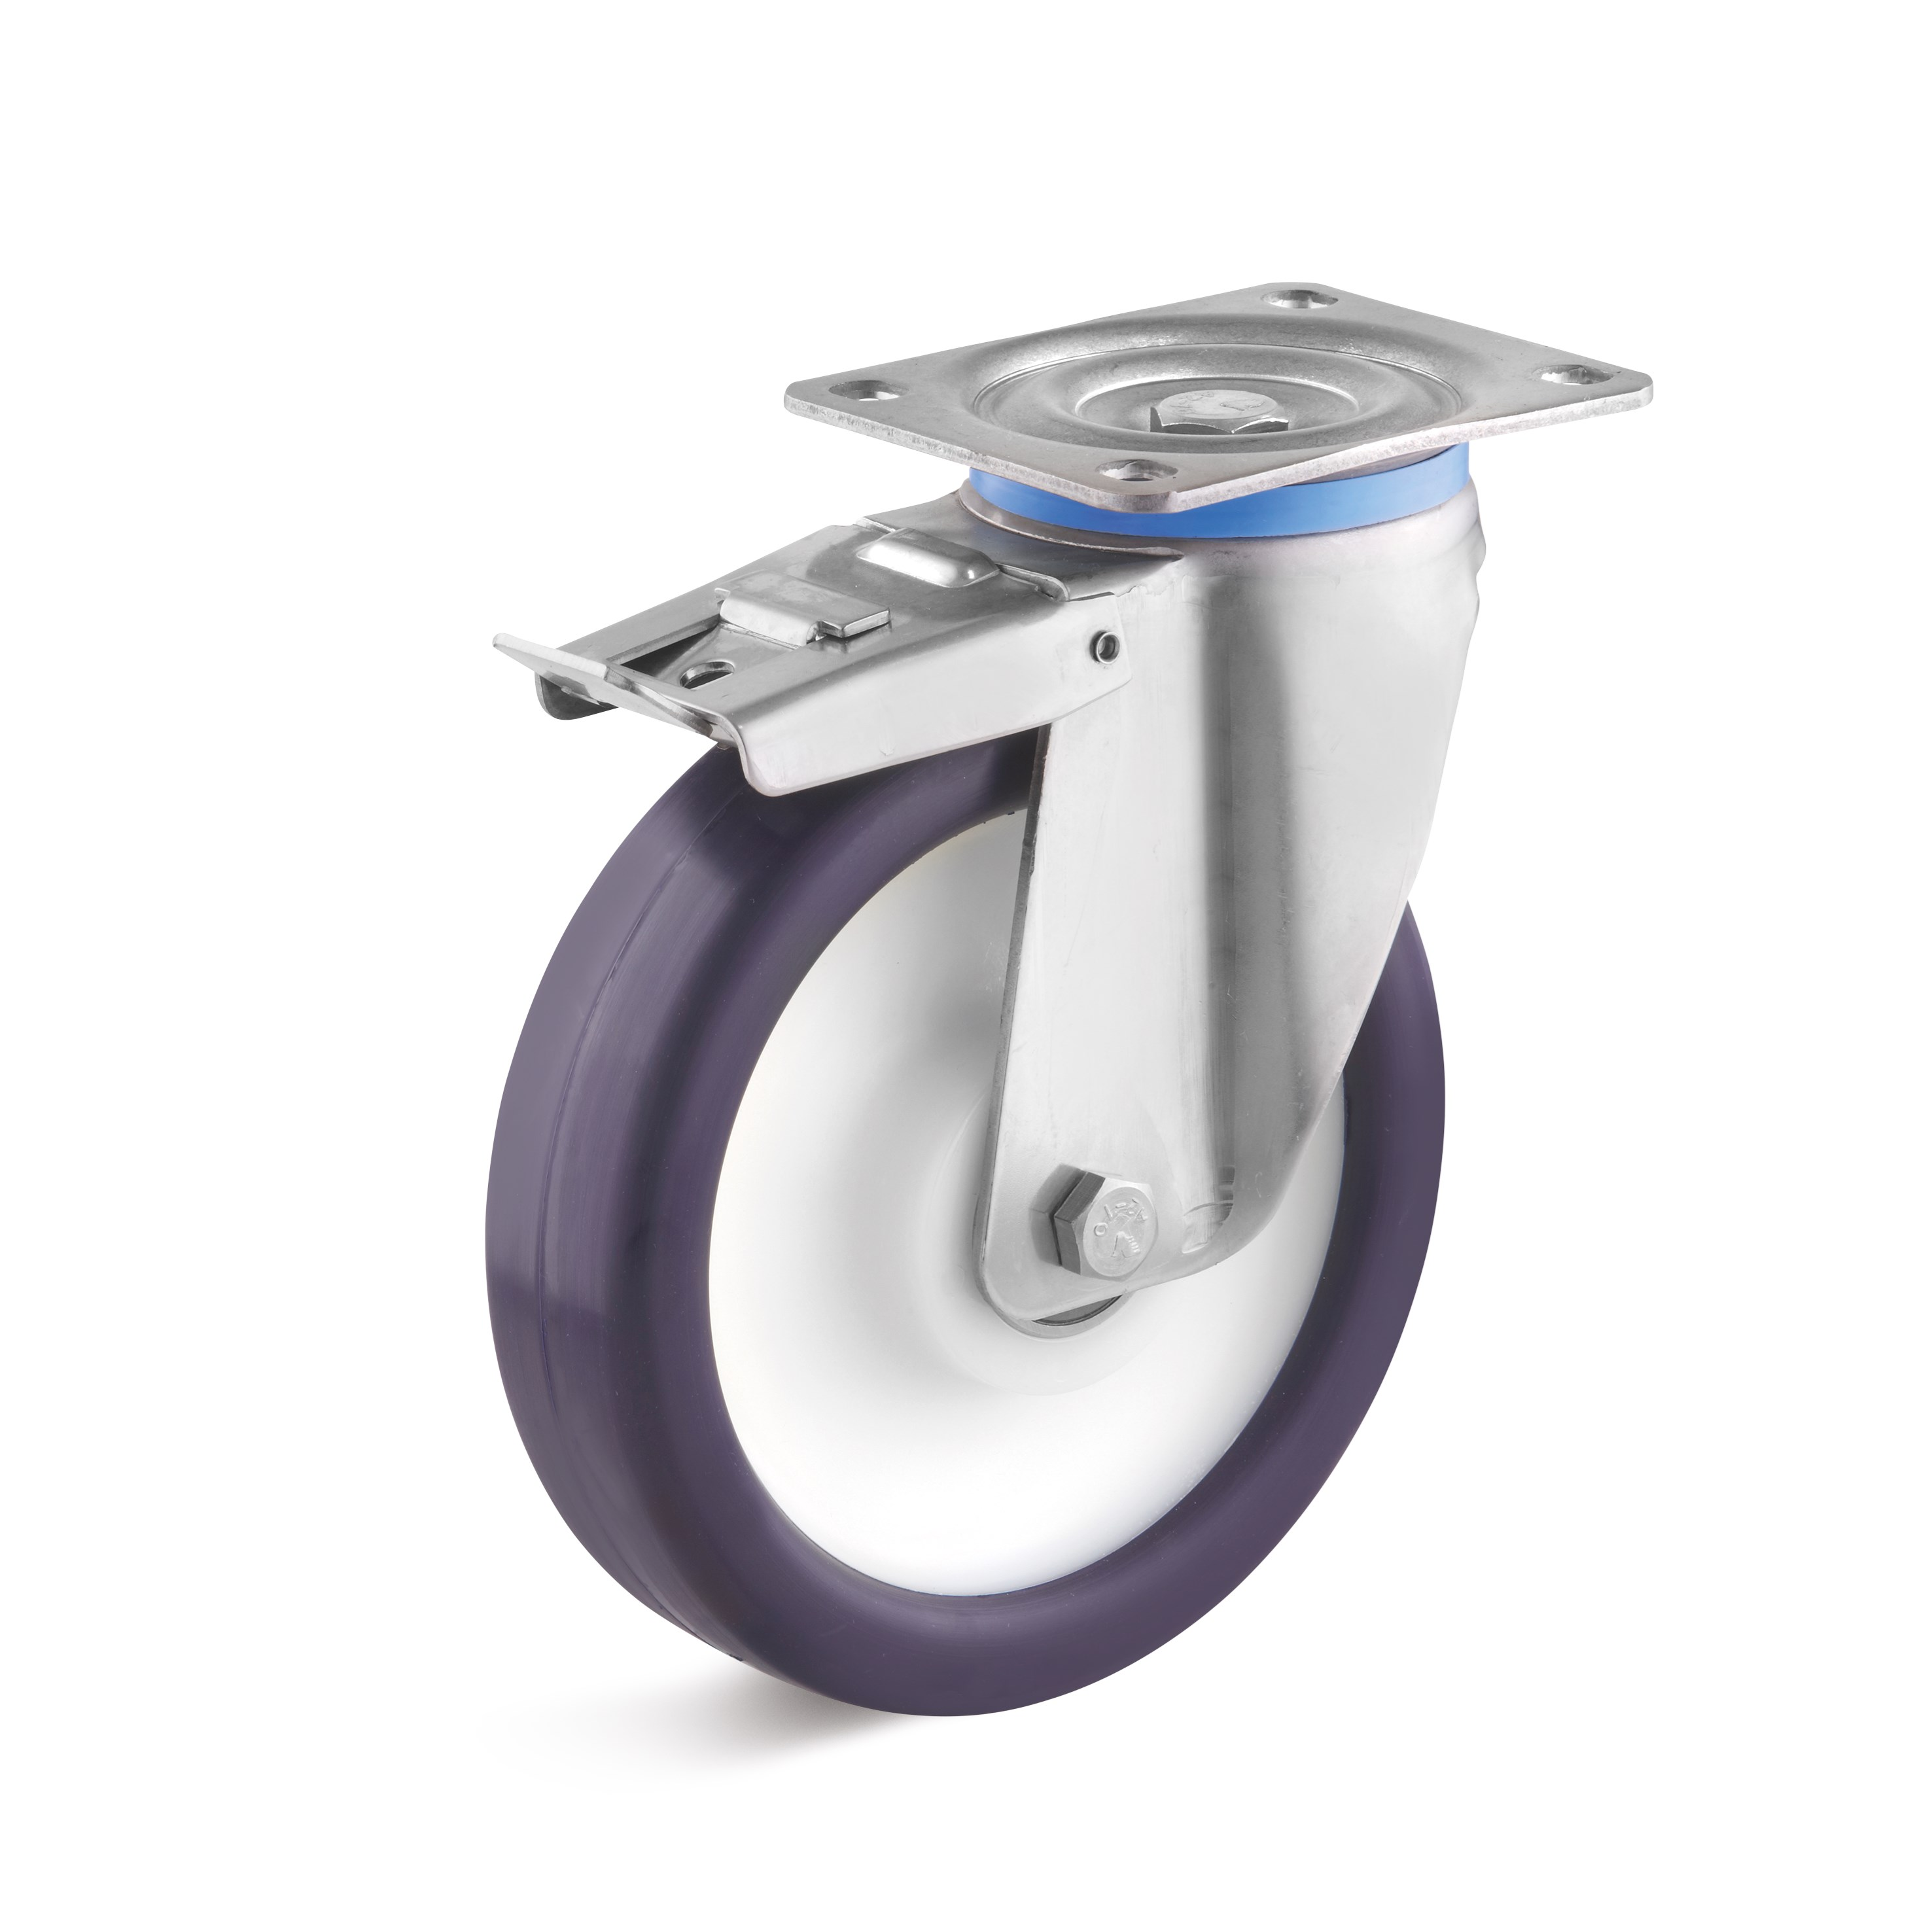 Stainless steel swivel castor with double stop and elastic polyurethane wheel